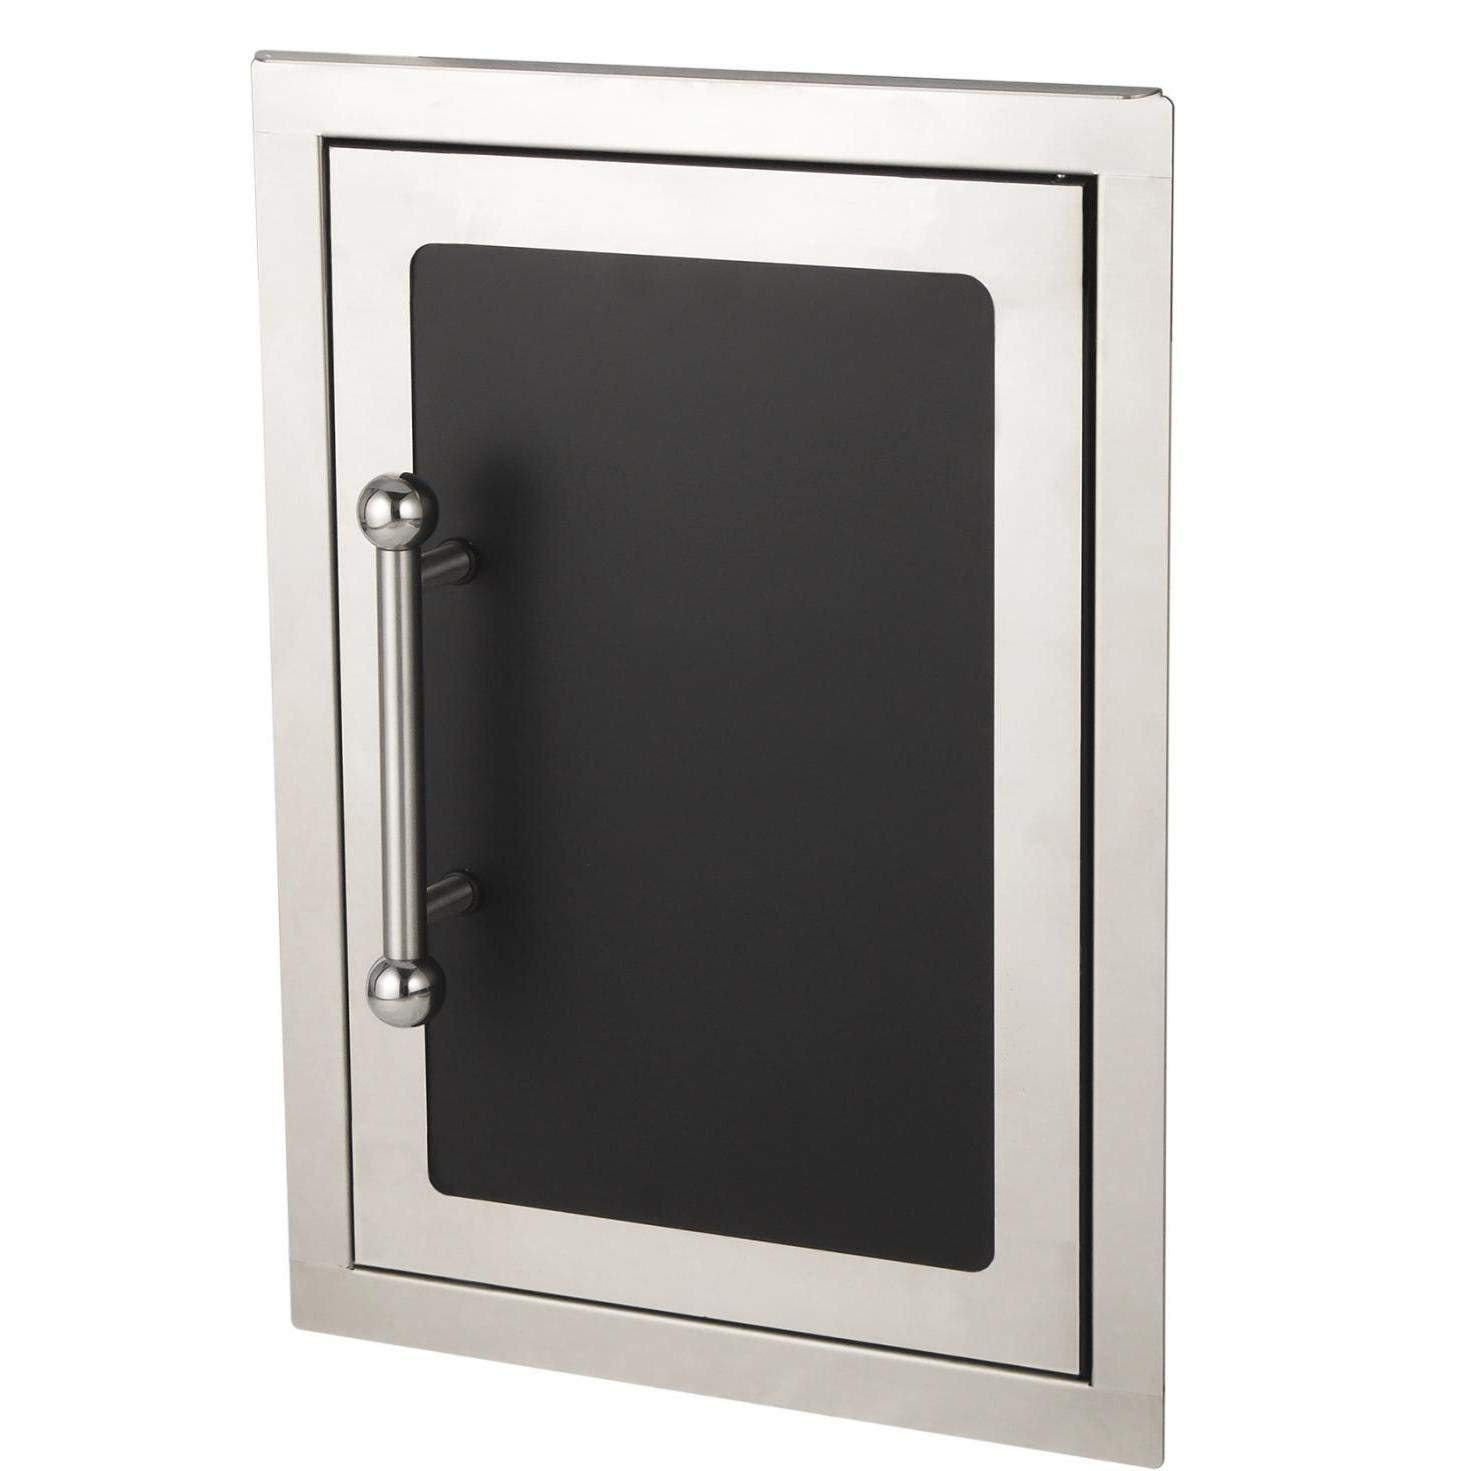 Fire Magic Echelon Black Diamond 14-inch Right-hinged Single Access Door - Vertical With Soft Close - 53920hsc-r